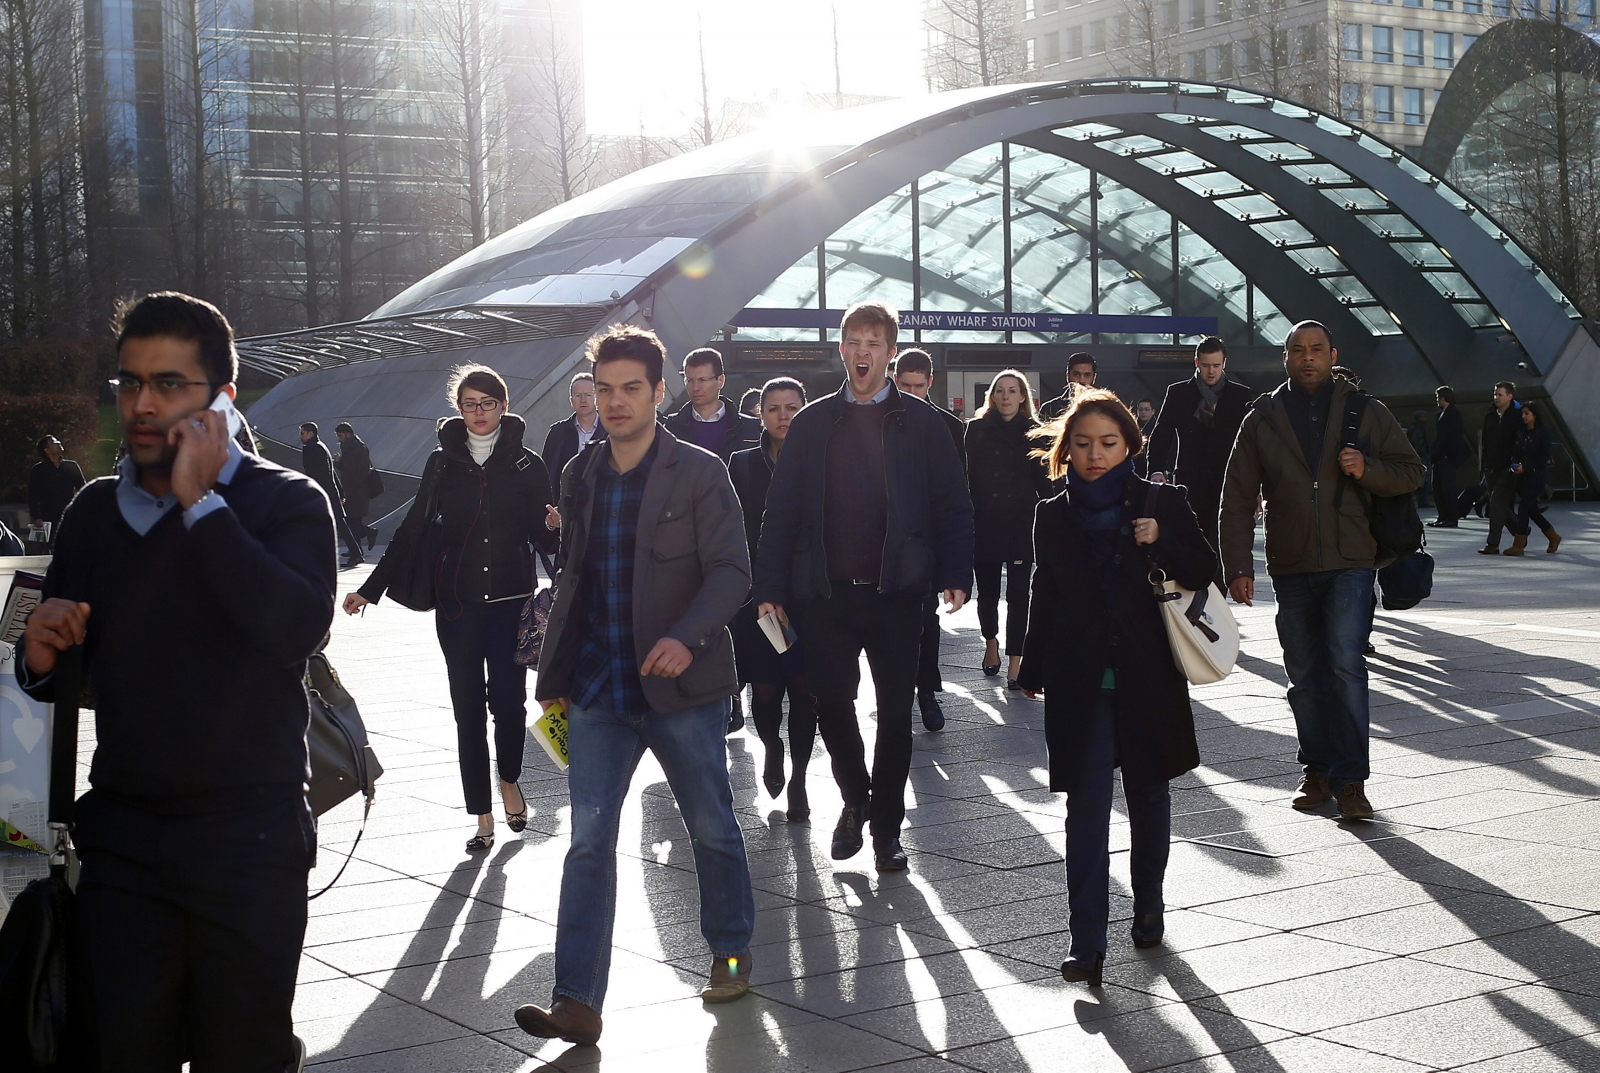 City workers in Canary Wharf